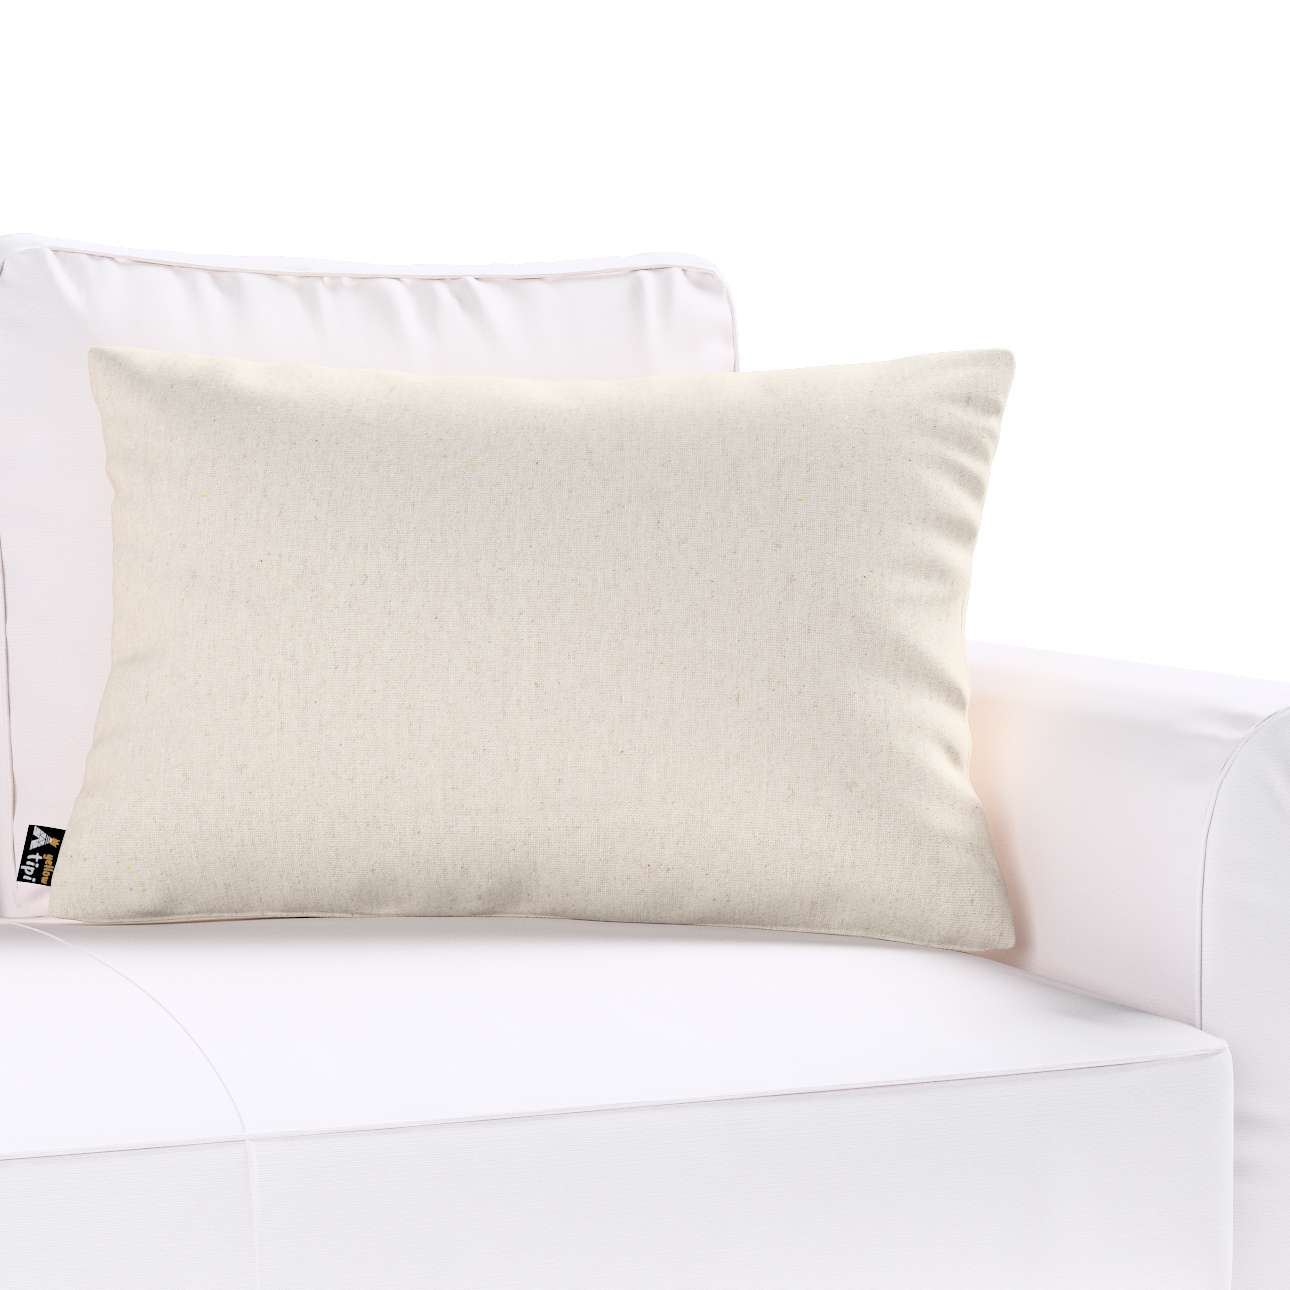 Milly rectangular cushion cover in collection Happiness, fabric: 133-65